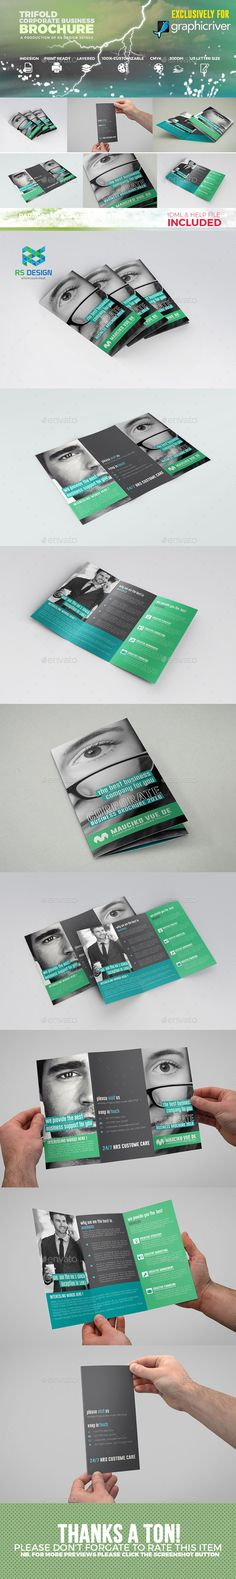 Trifold Corporate Brochure Template InDesign INDD. Download here: http://graphicriver.net/item/trifold-corporate-brochure-/16926833?ref=ksioks